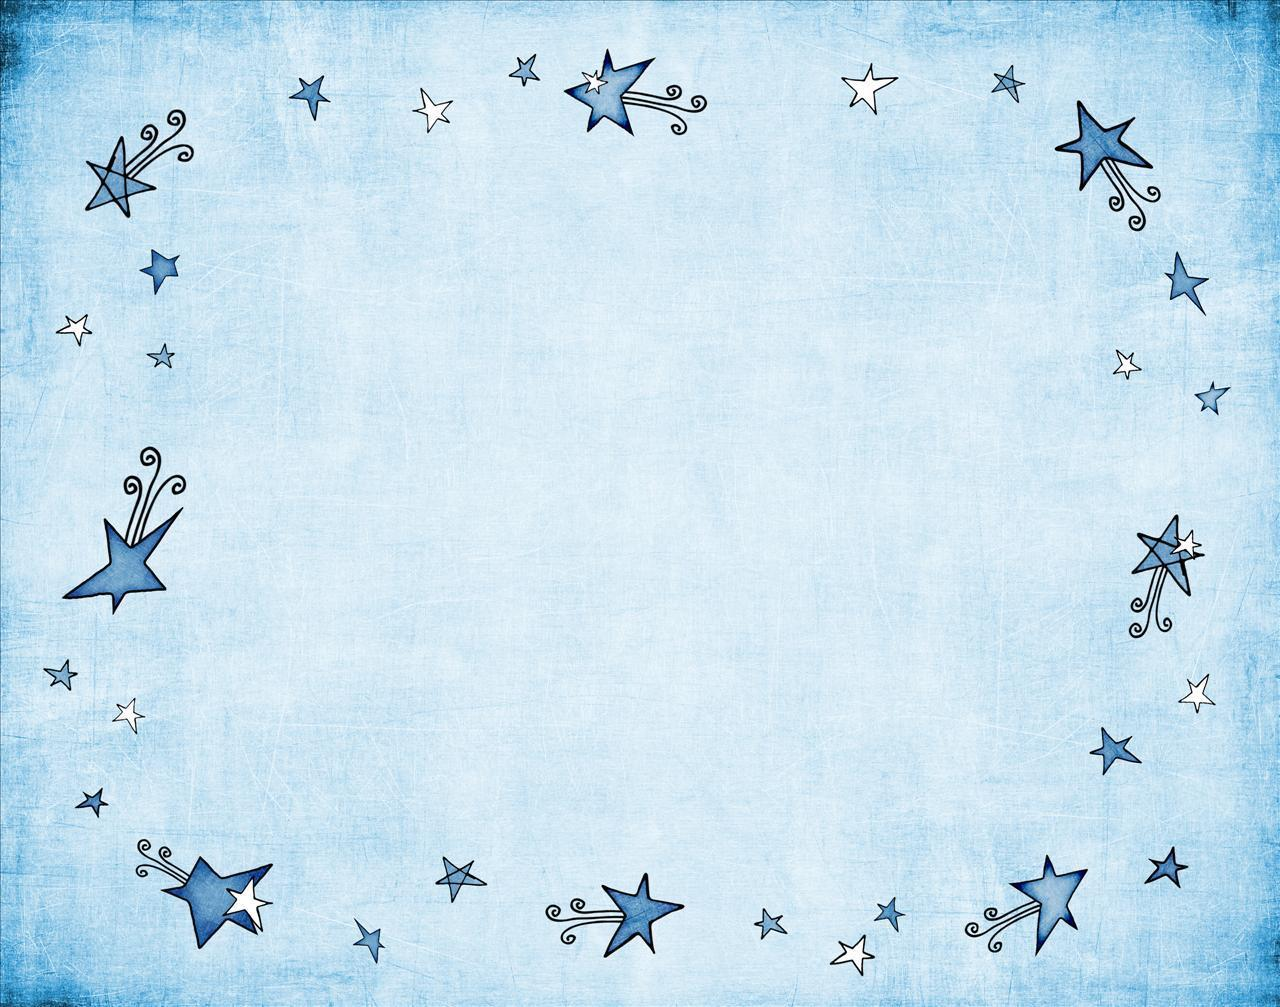 Star-Spangled Blue Frame Powerpoint Background Image #704